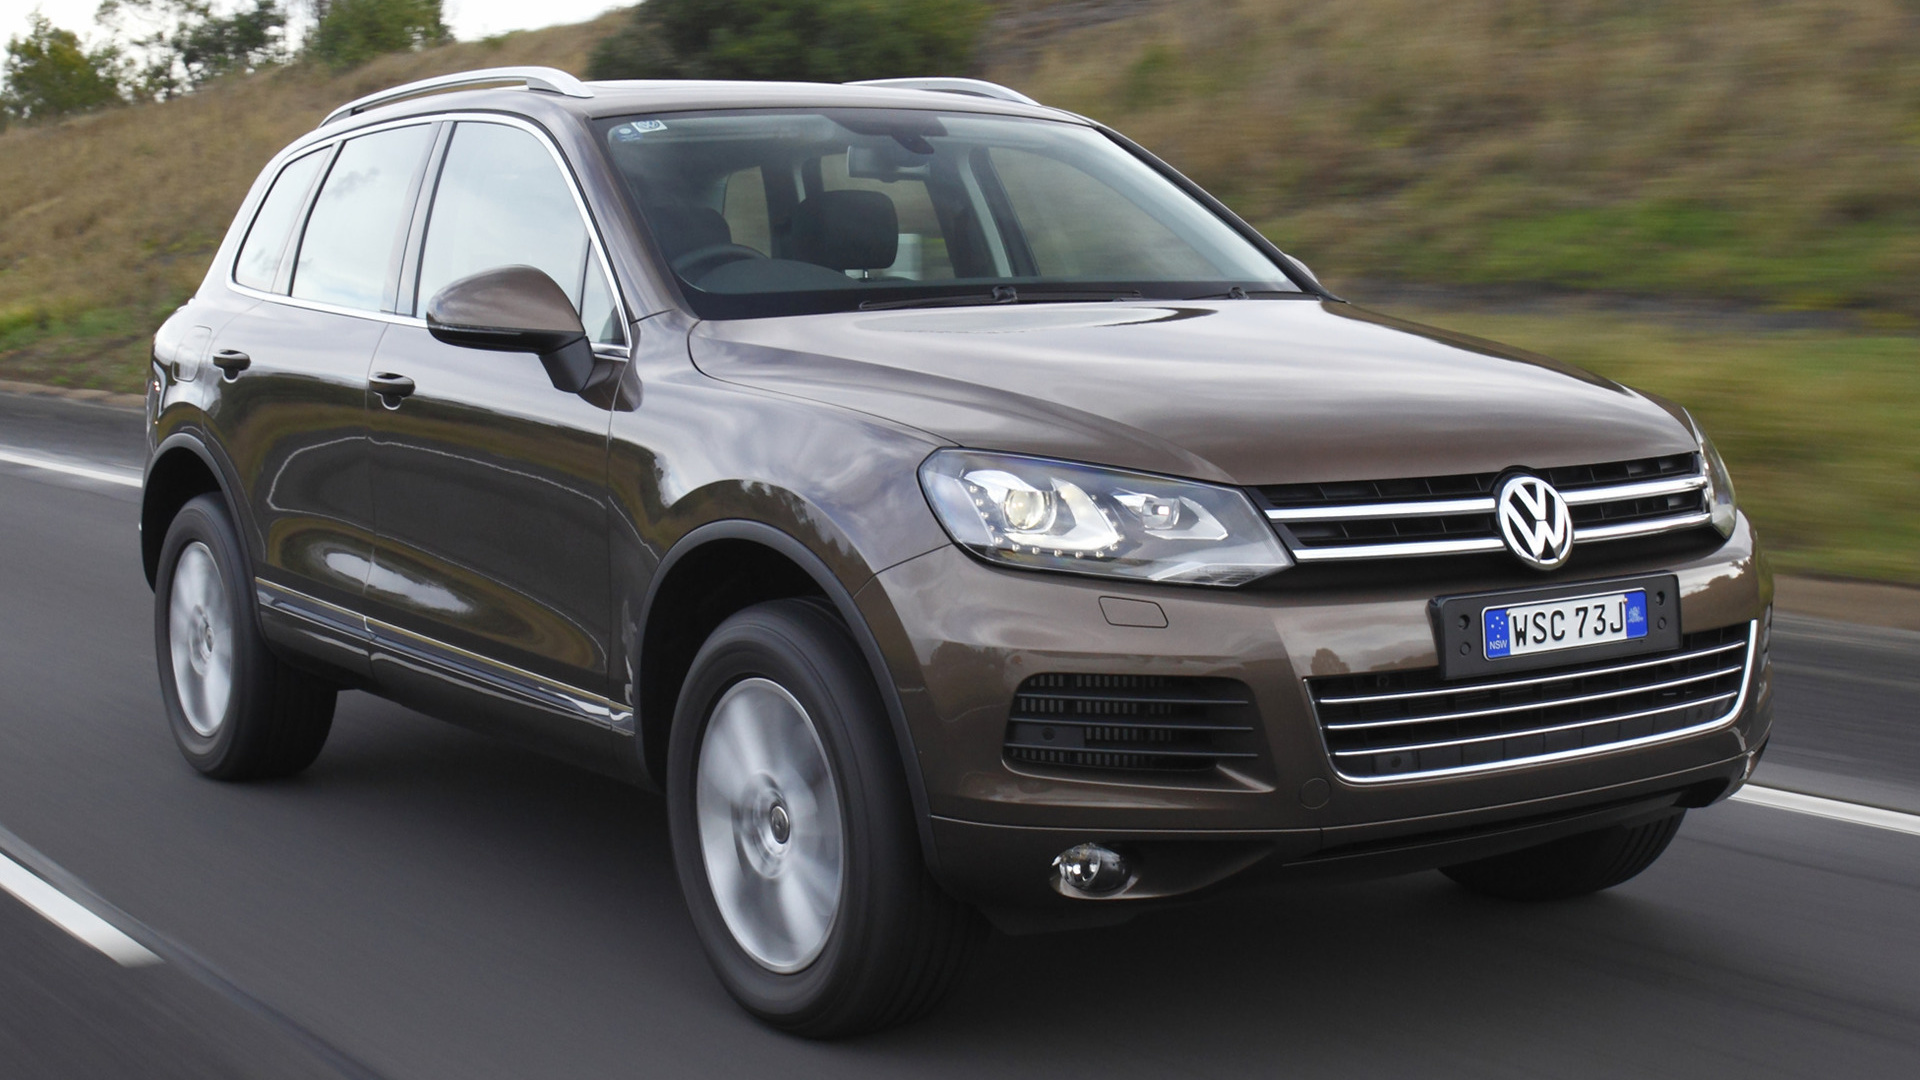 volkswagen touareg 2010 au wallpapers and hd images. Black Bedroom Furniture Sets. Home Design Ideas